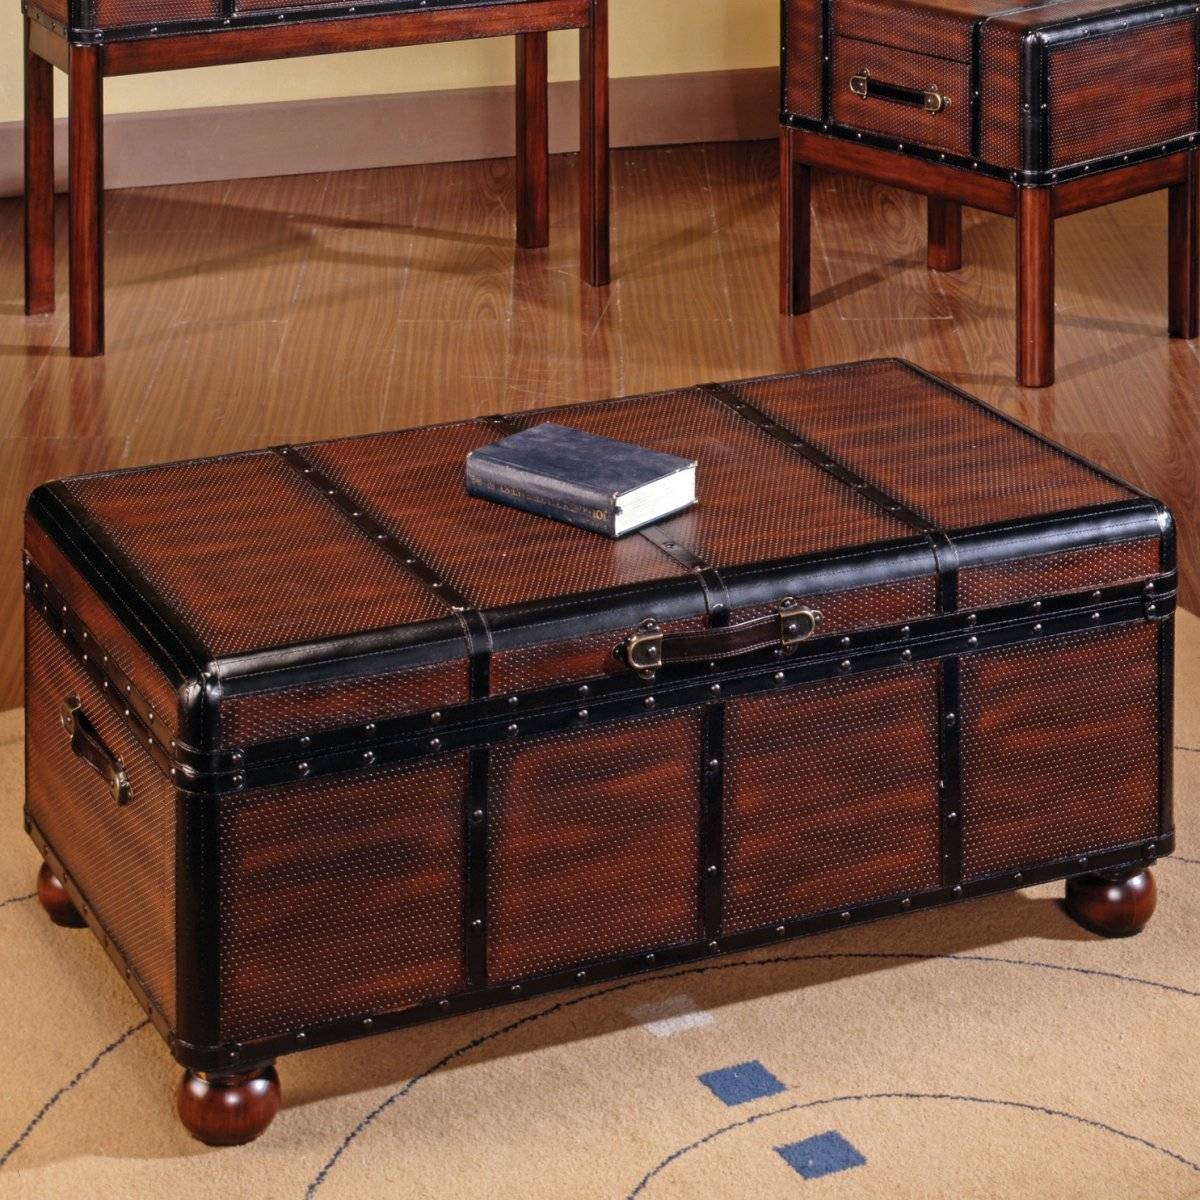 Trunk Coffee Table With Storage | Coffee Tables Decoration with regard to Storage Trunk Coffee Tables (Image 27 of 30)